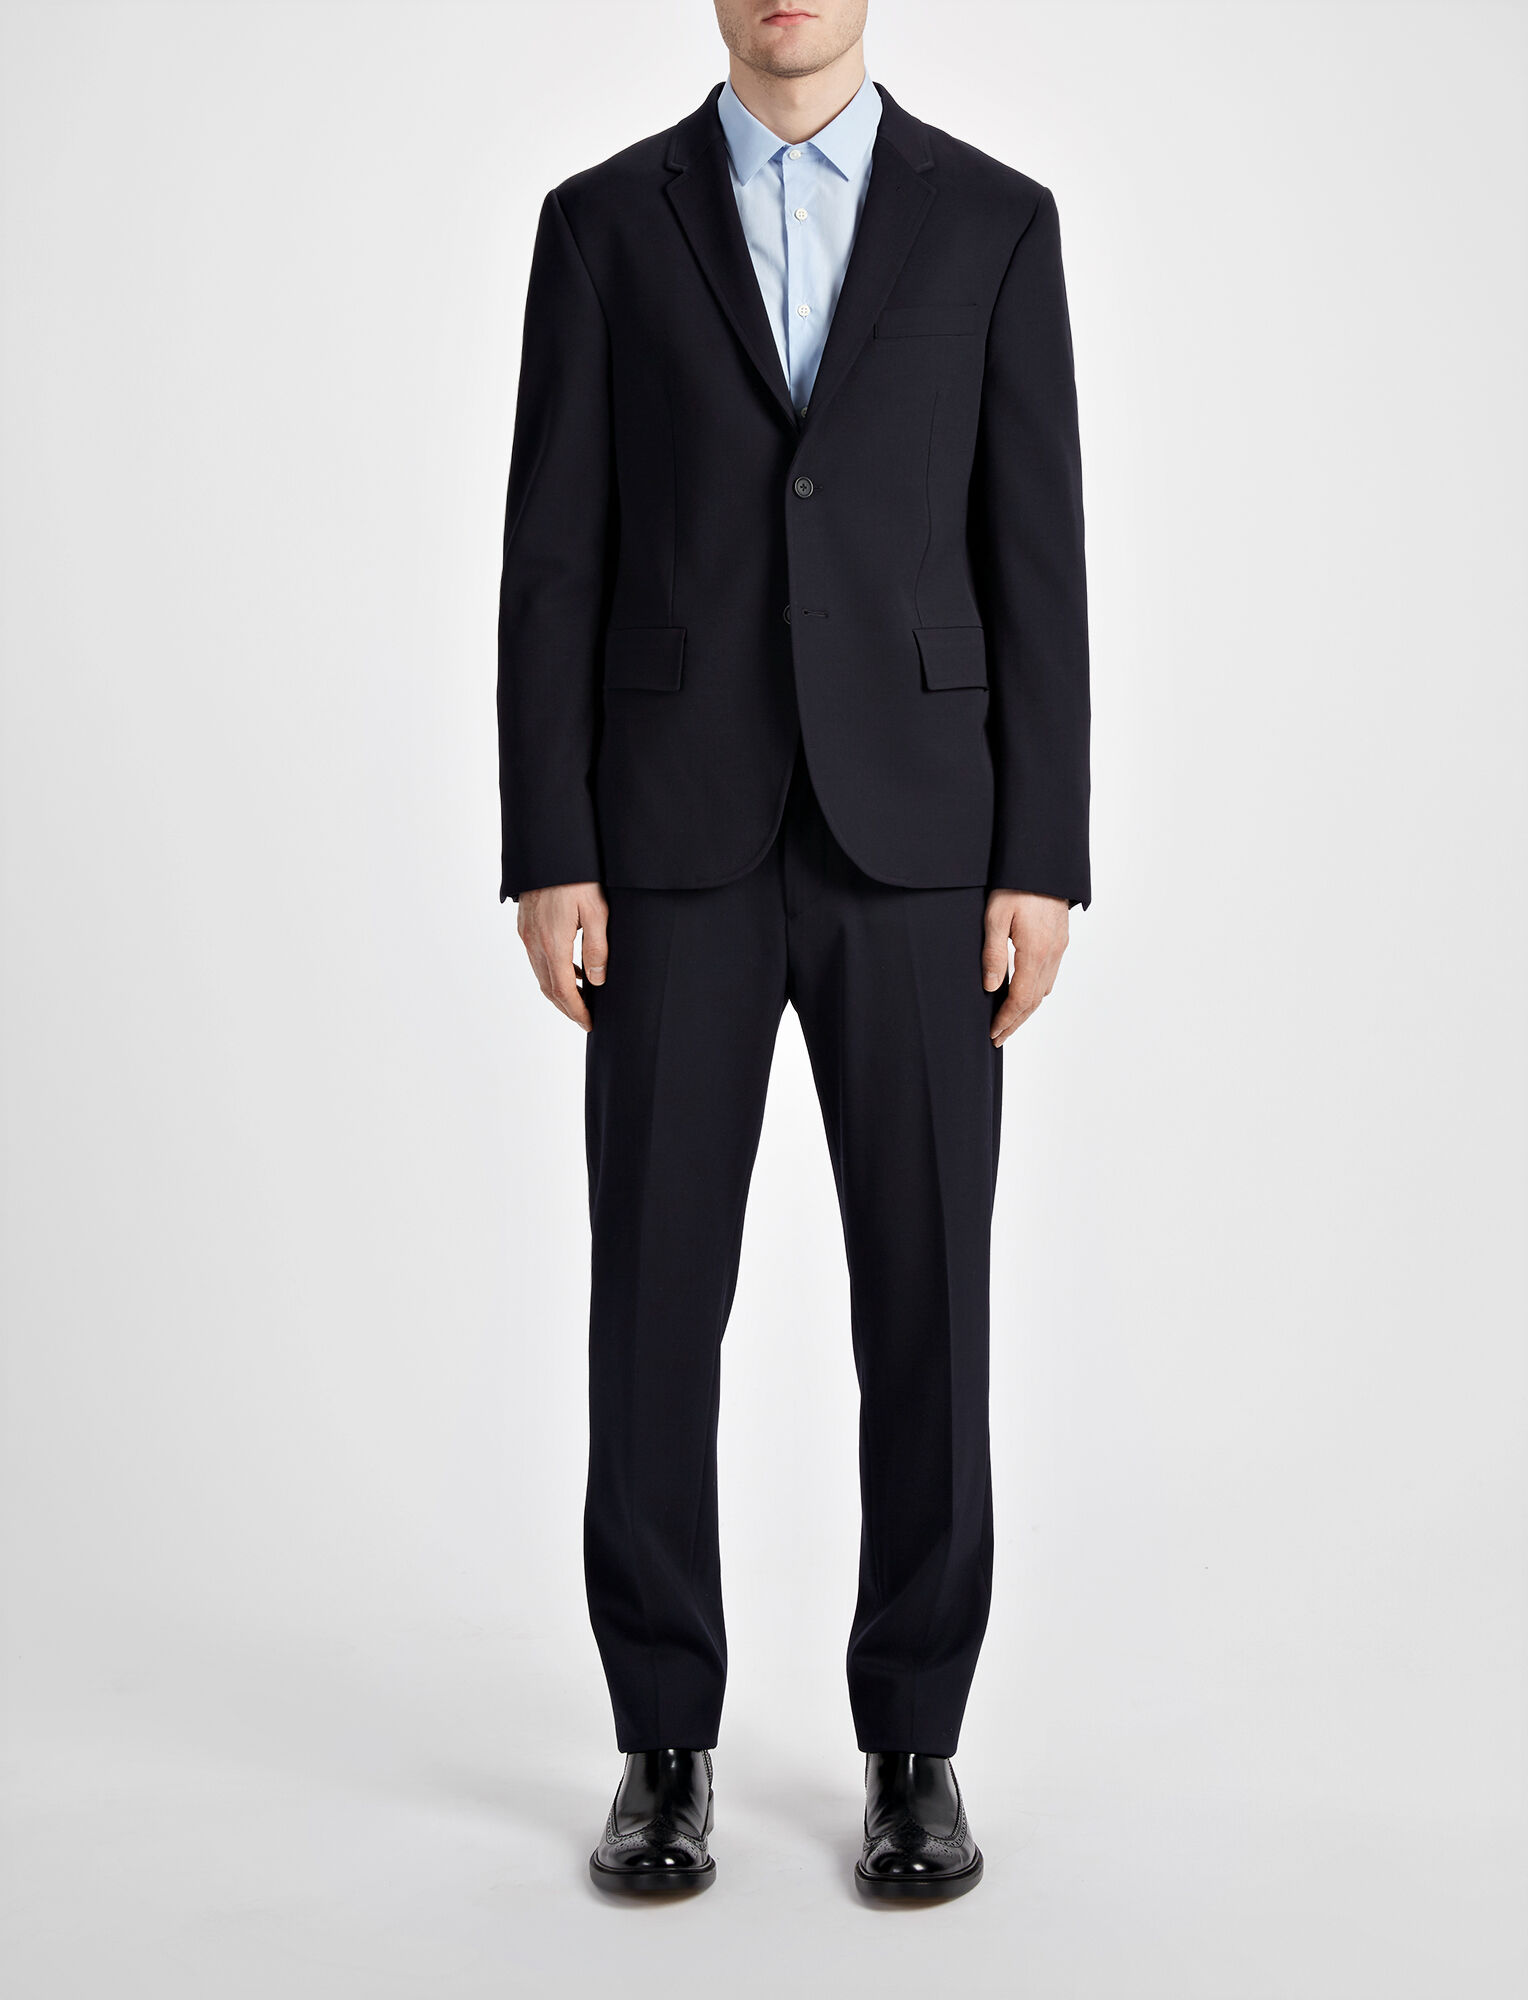 Joseph, Techno Wool Stretch Halifax Suiting Jaket, in NAVY